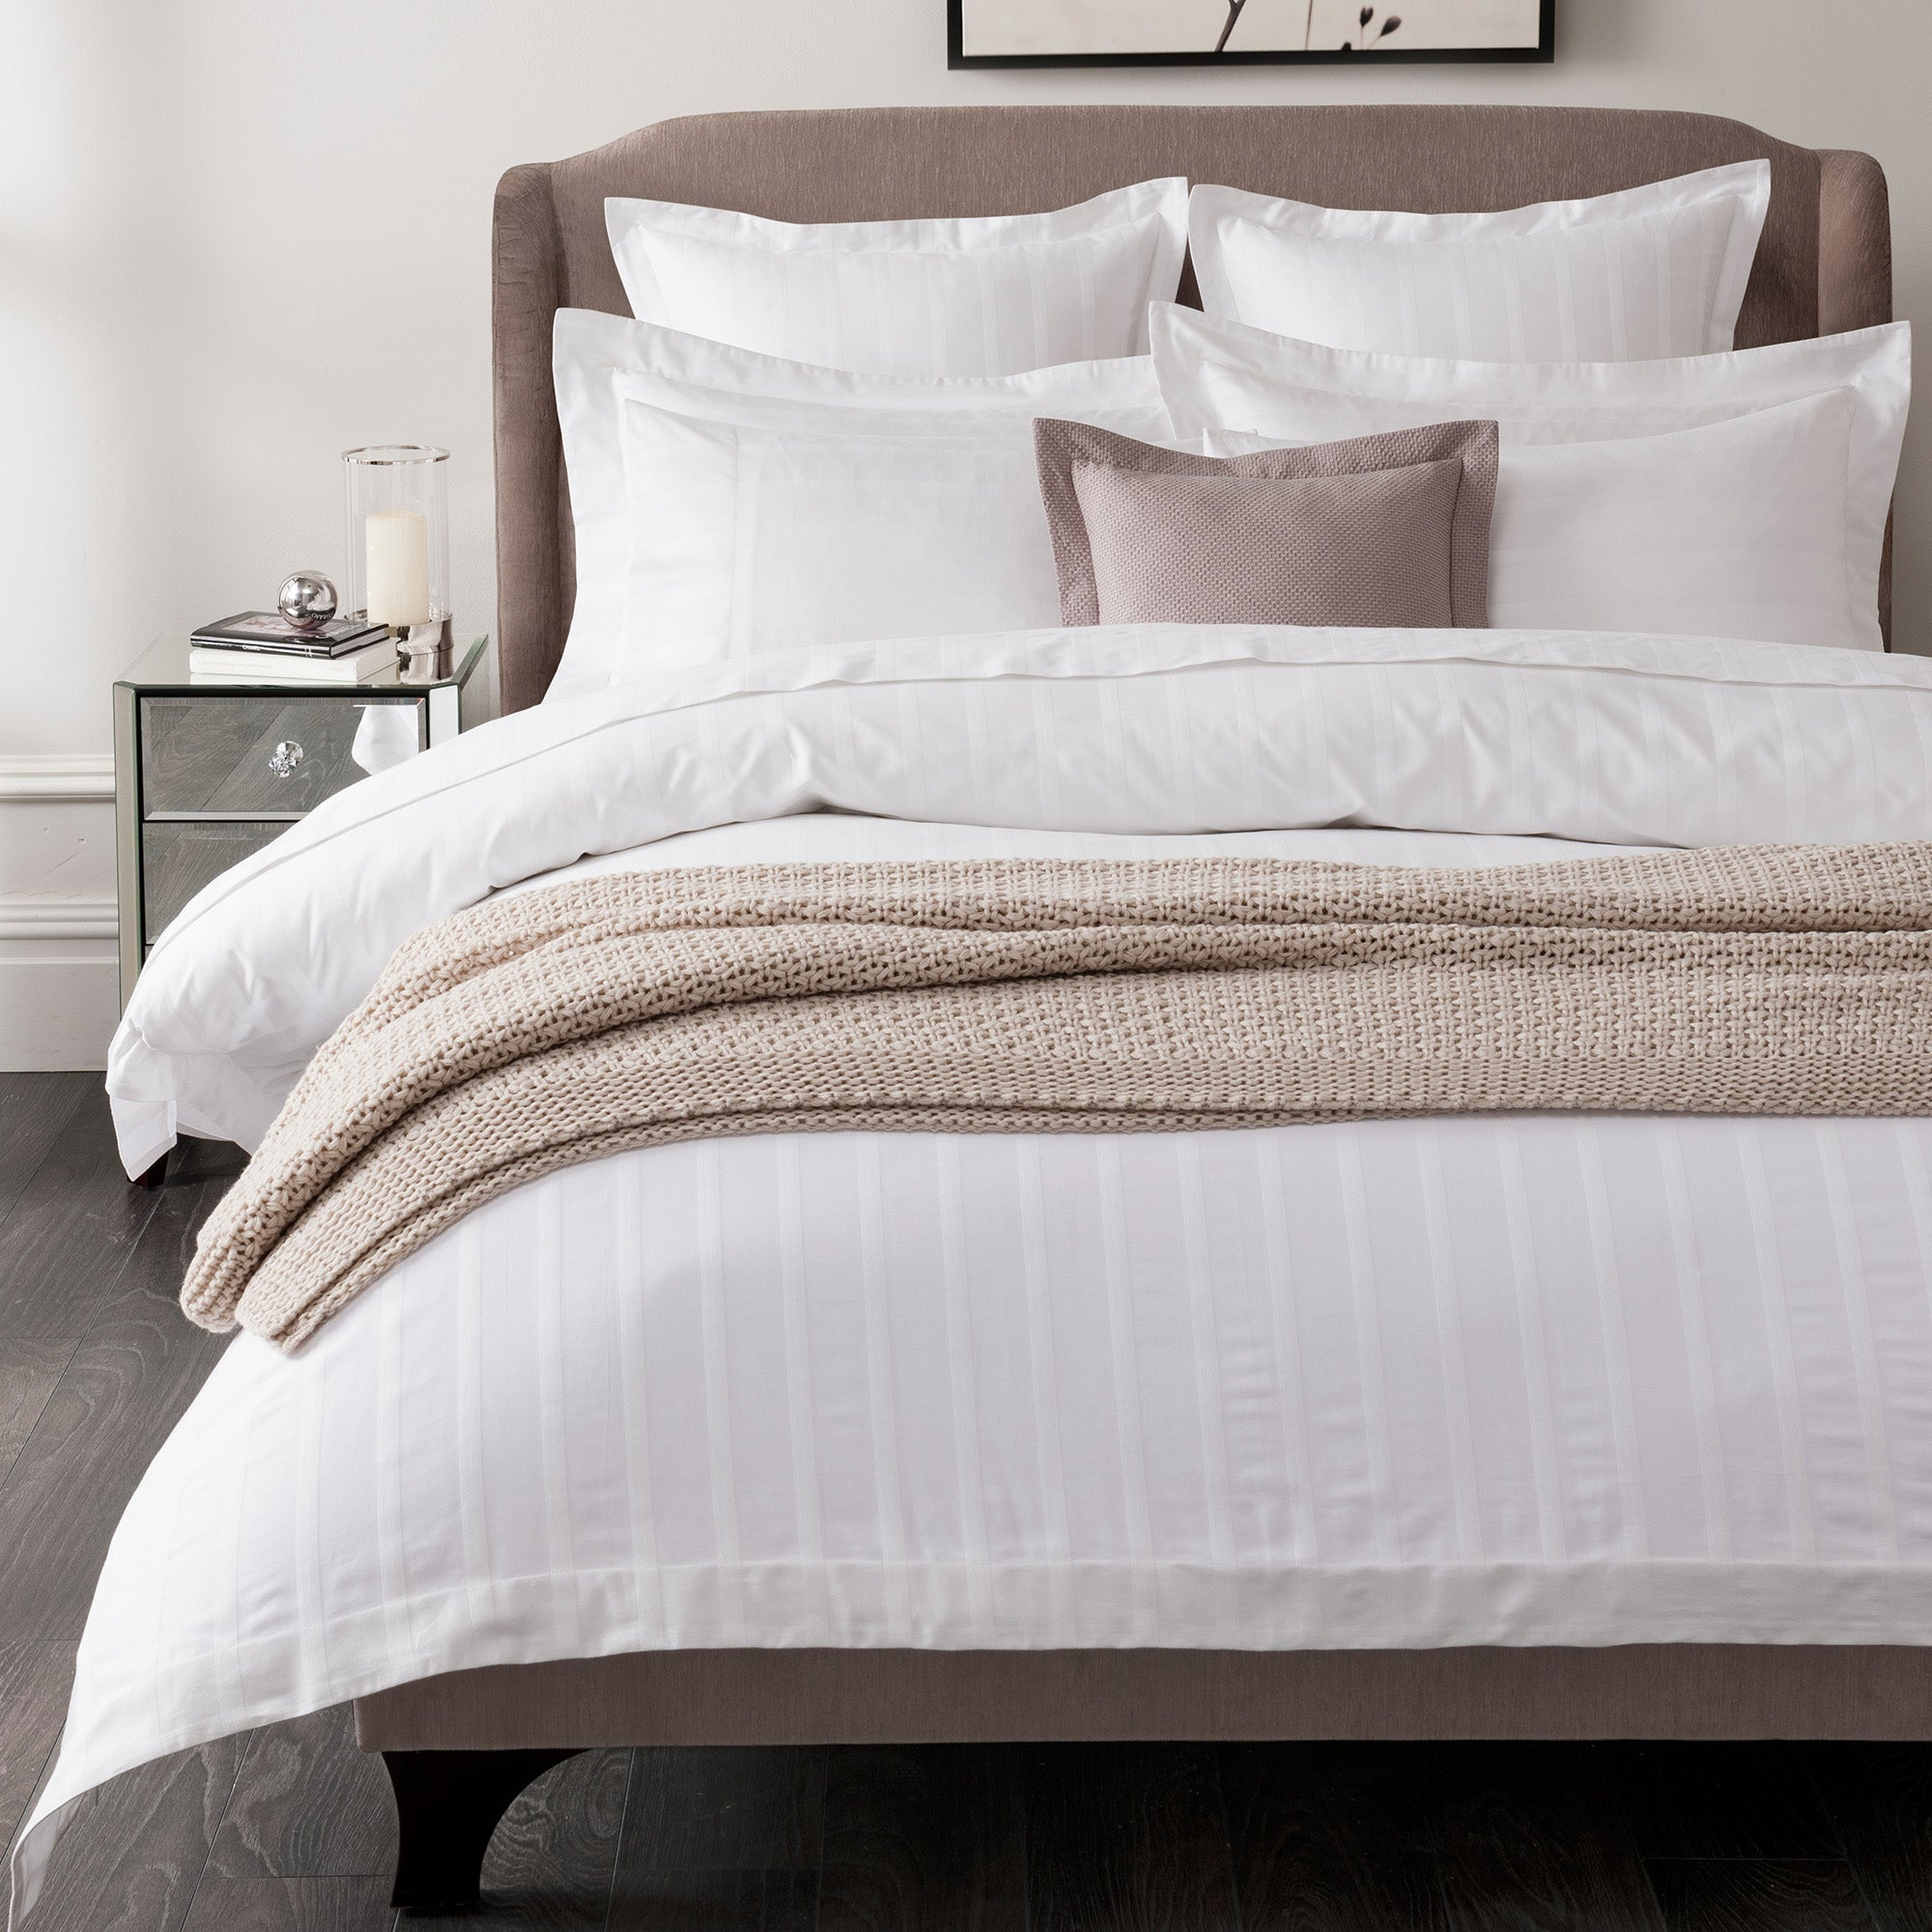 Image of 5A Fifth Avenue Herringbone 300 Thread Count 100% Cotton White Duvet Cover White